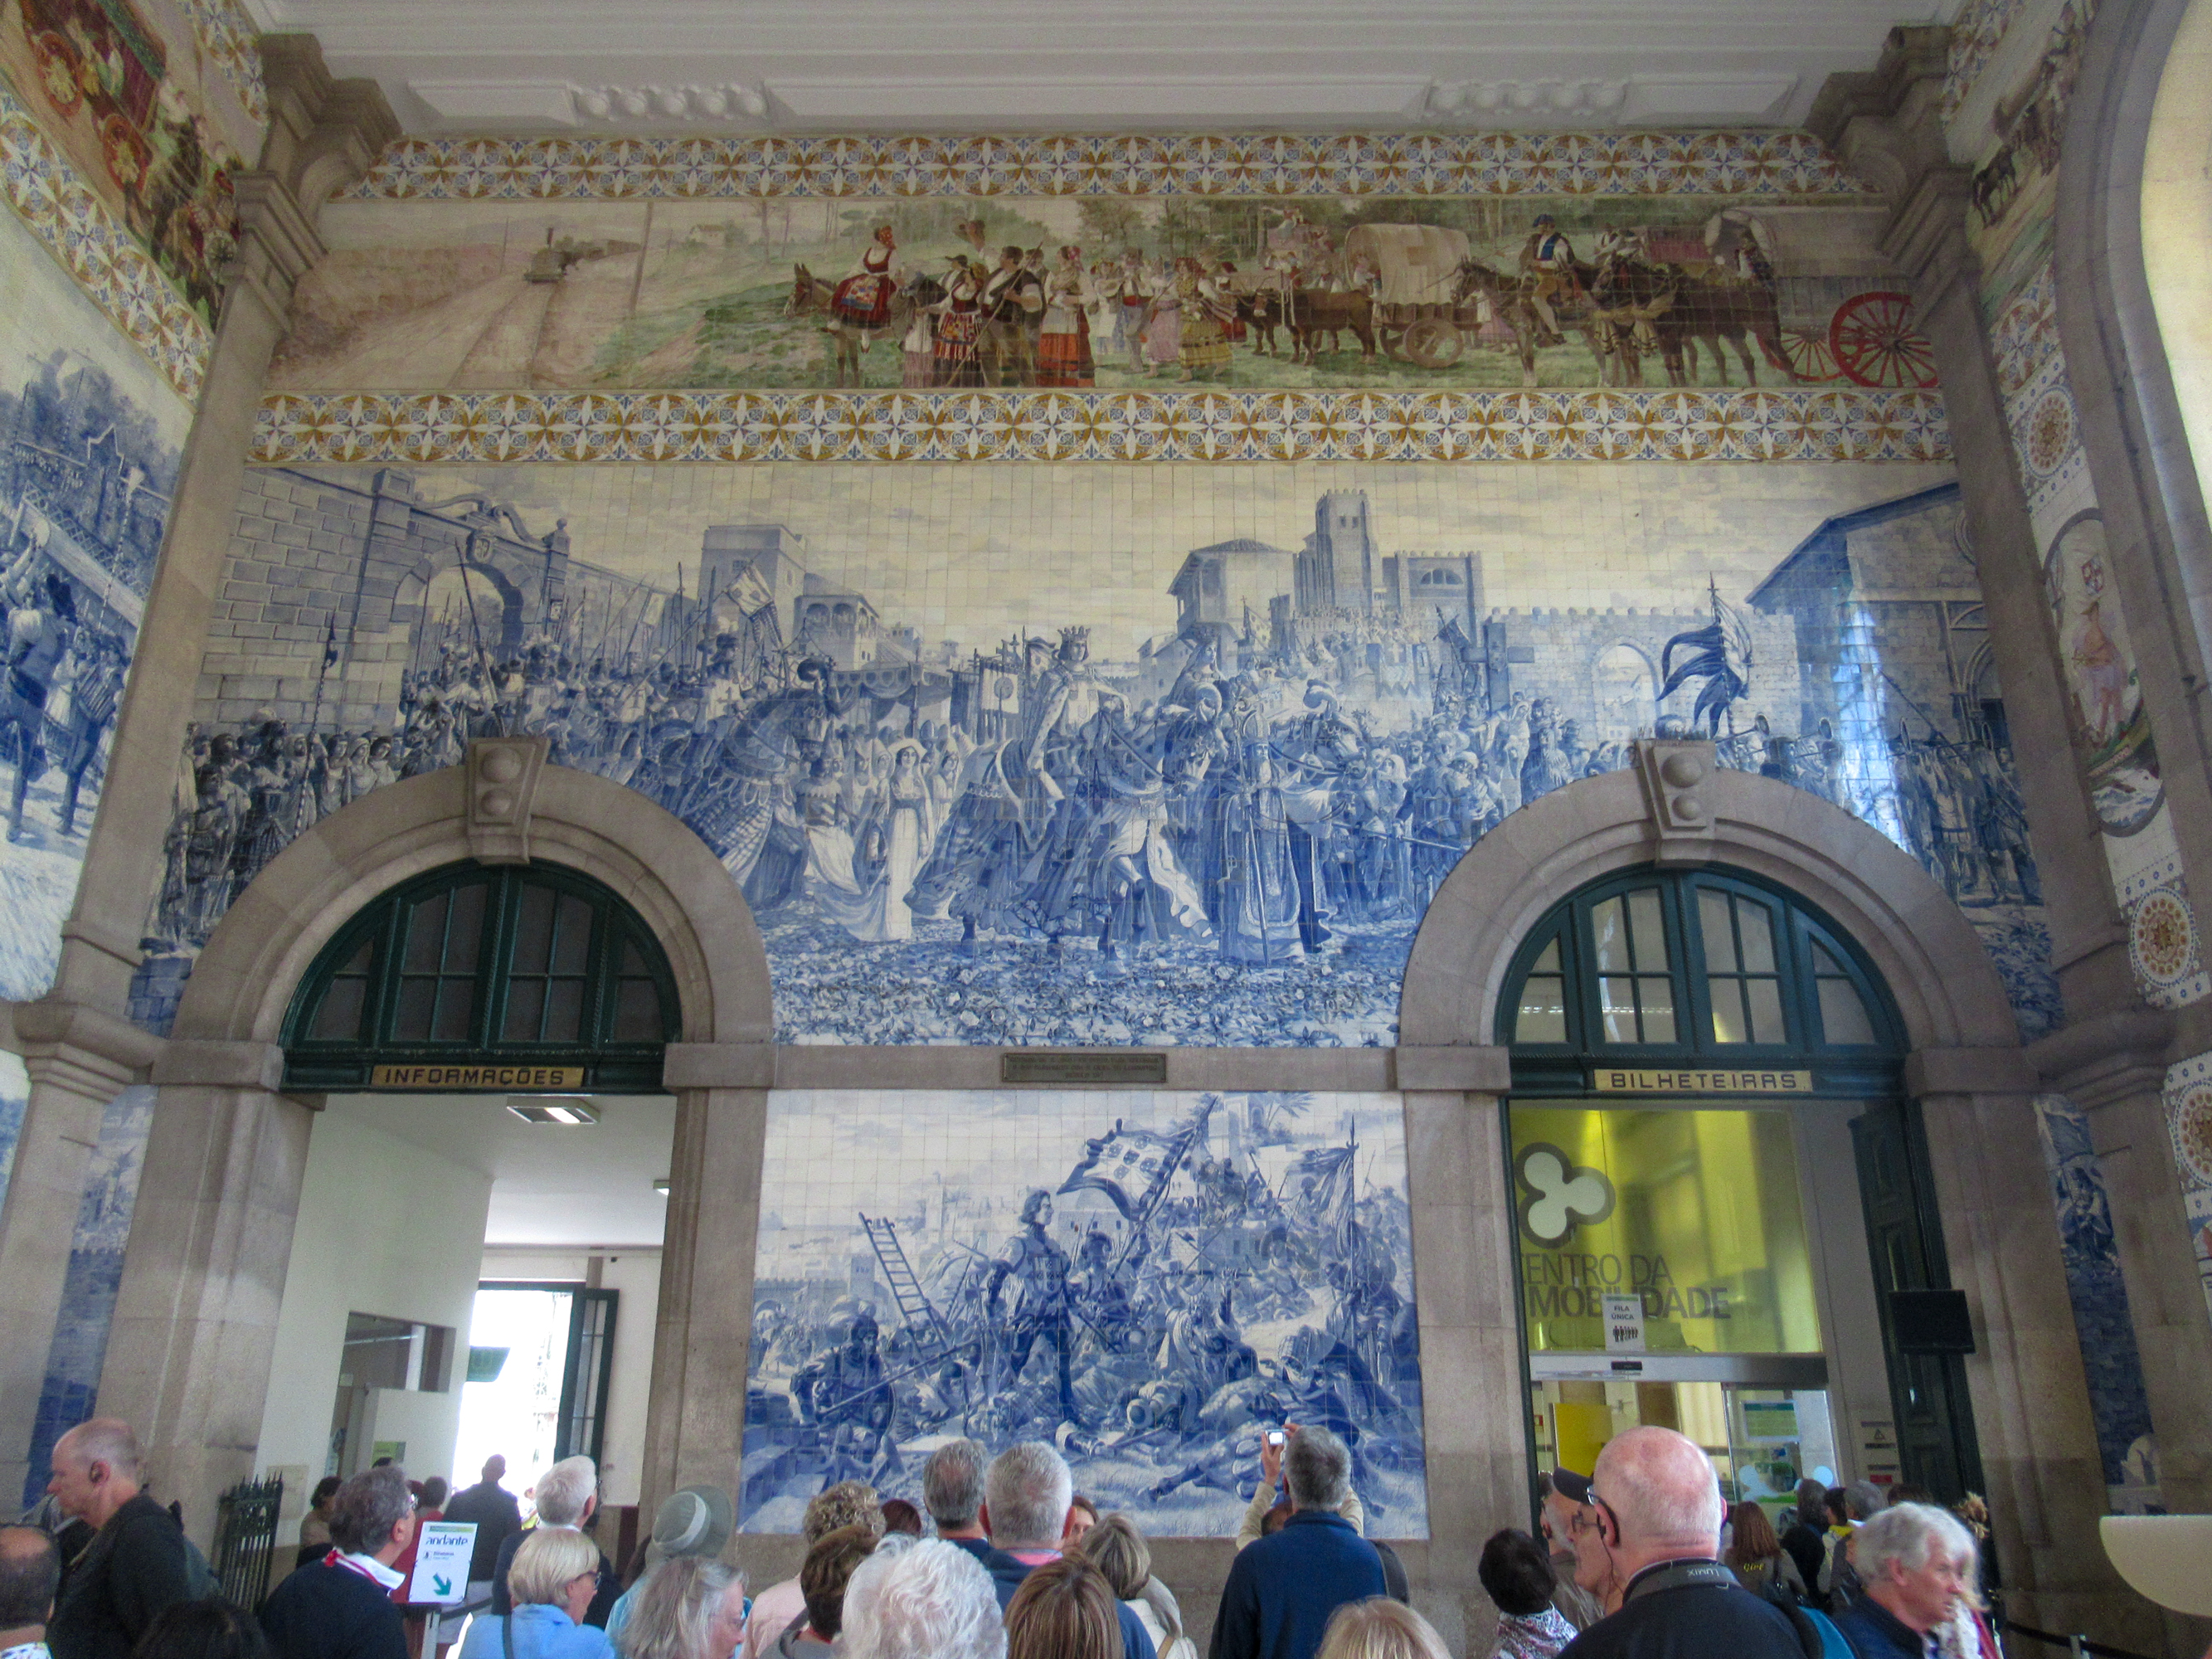 Tile mosaic on the inside of São Bento Railway Station in Porto, Portugal.